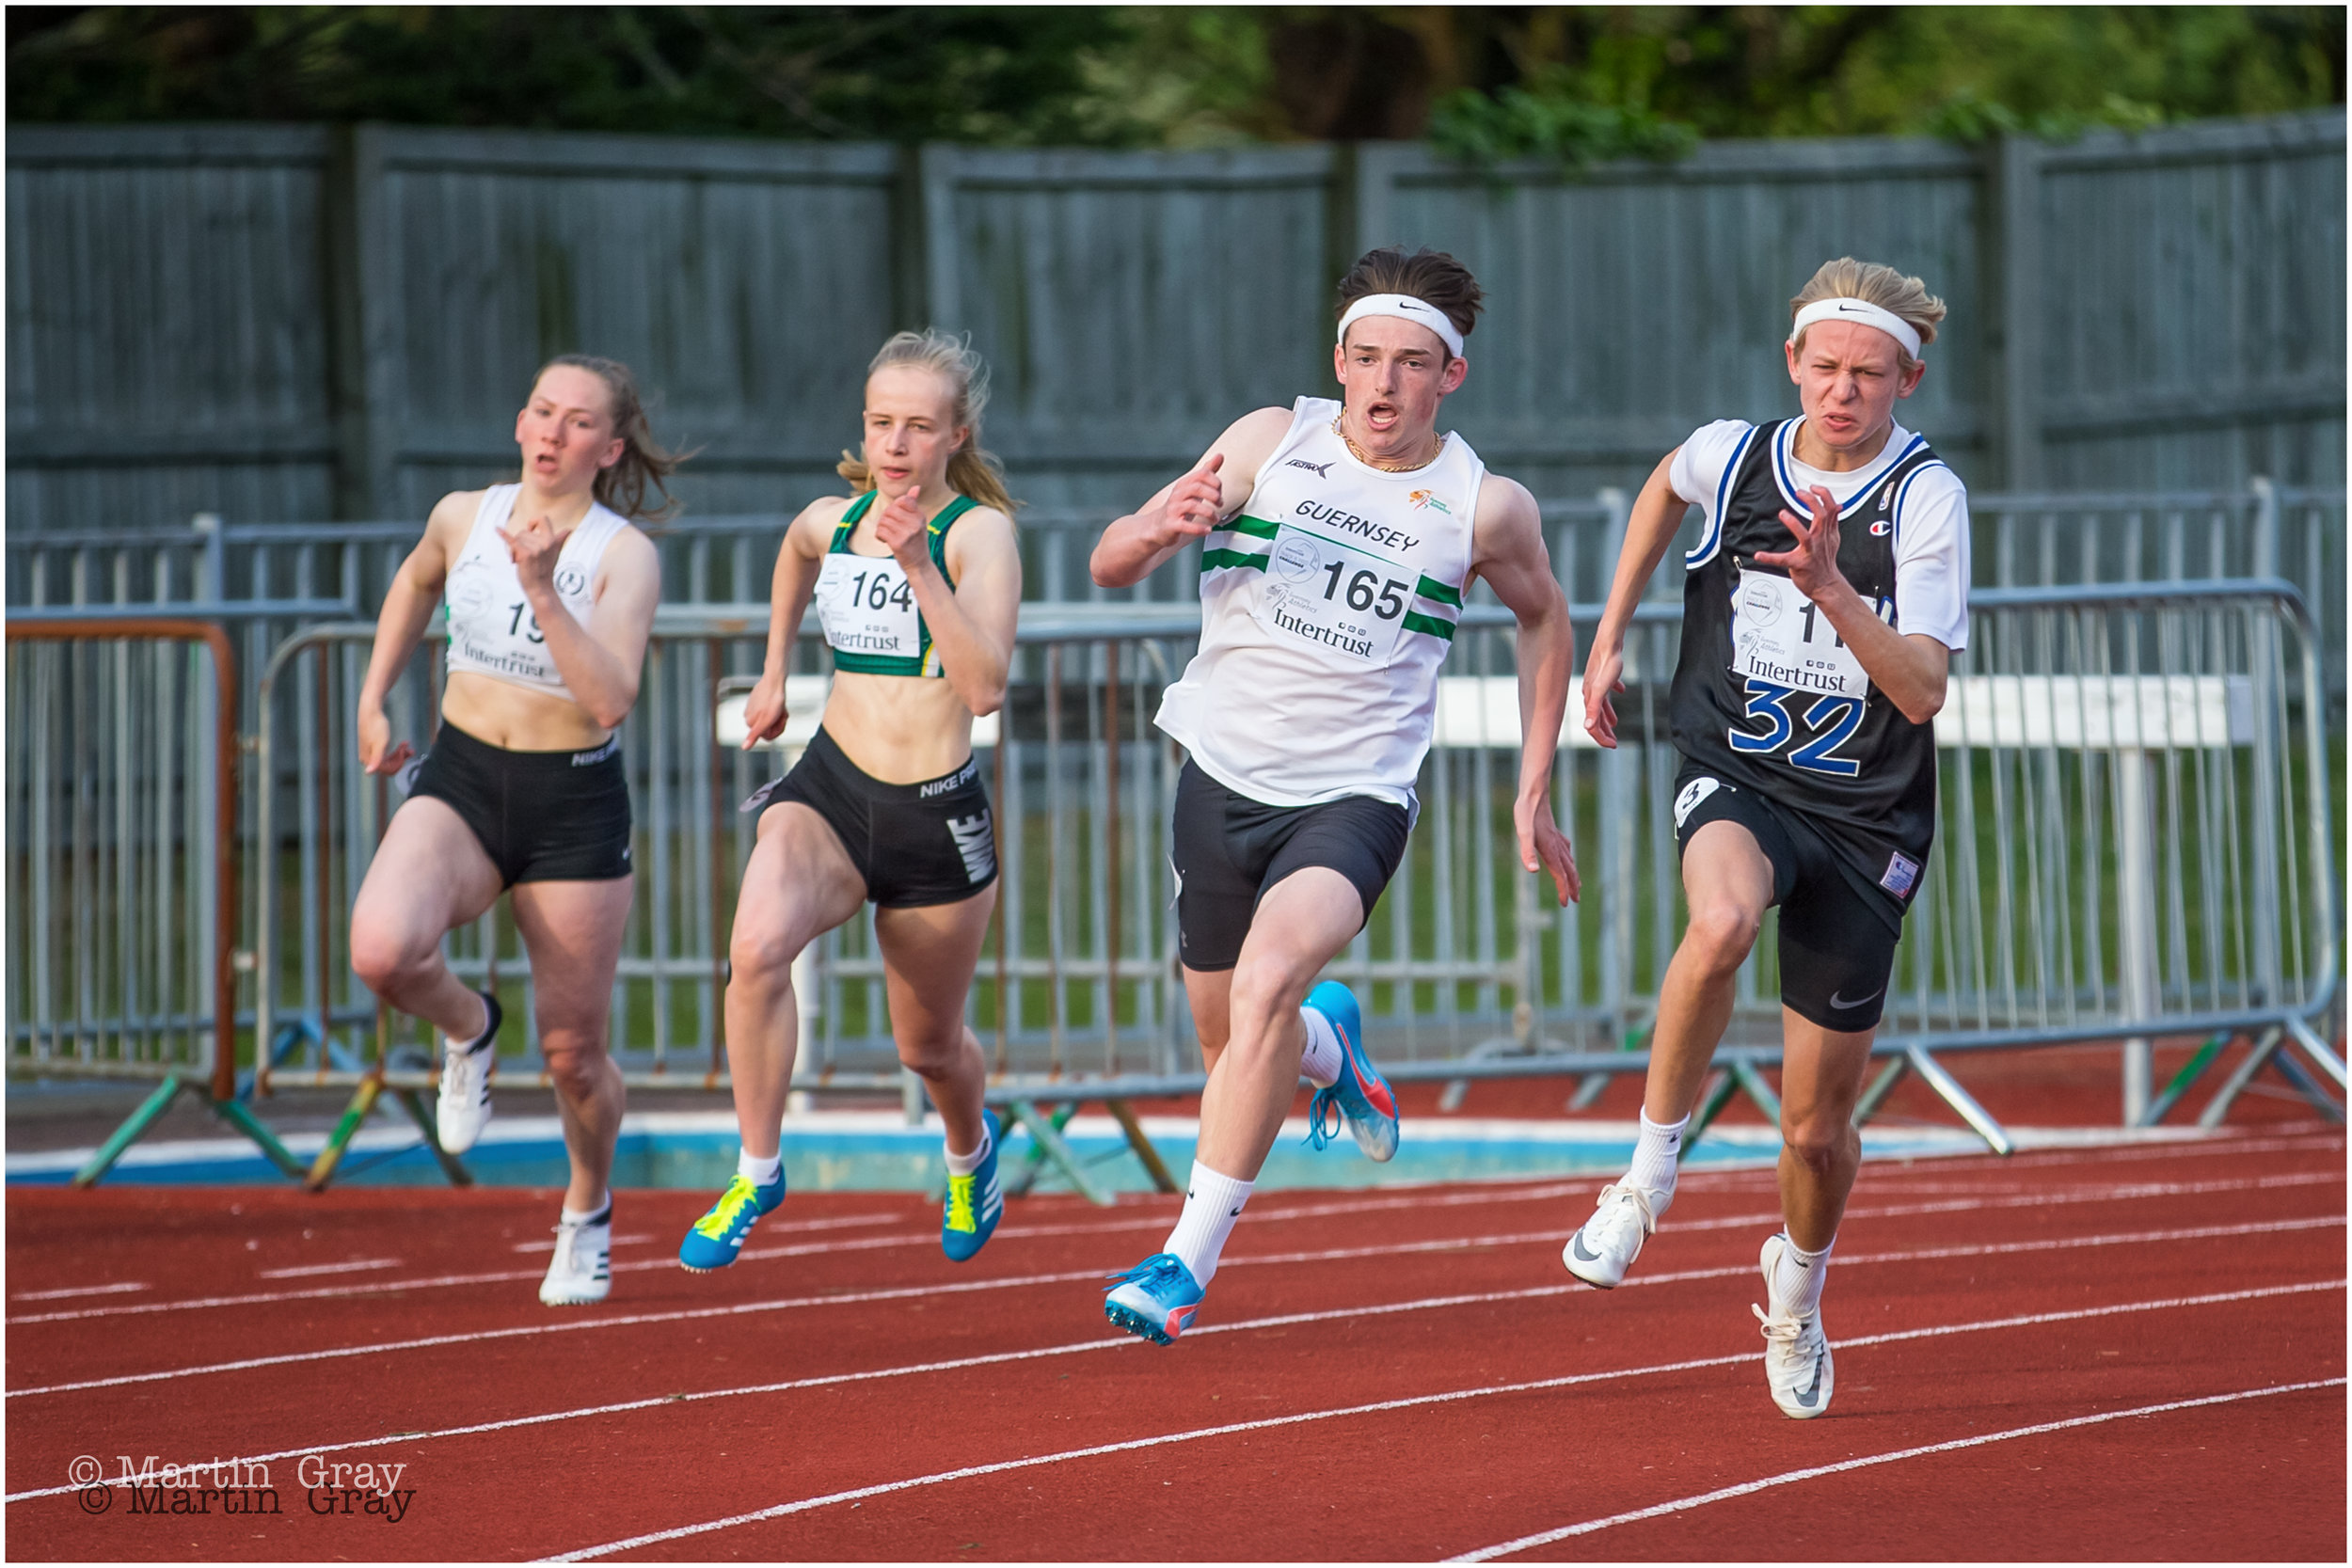 A shot from the 200m Invitational Race…